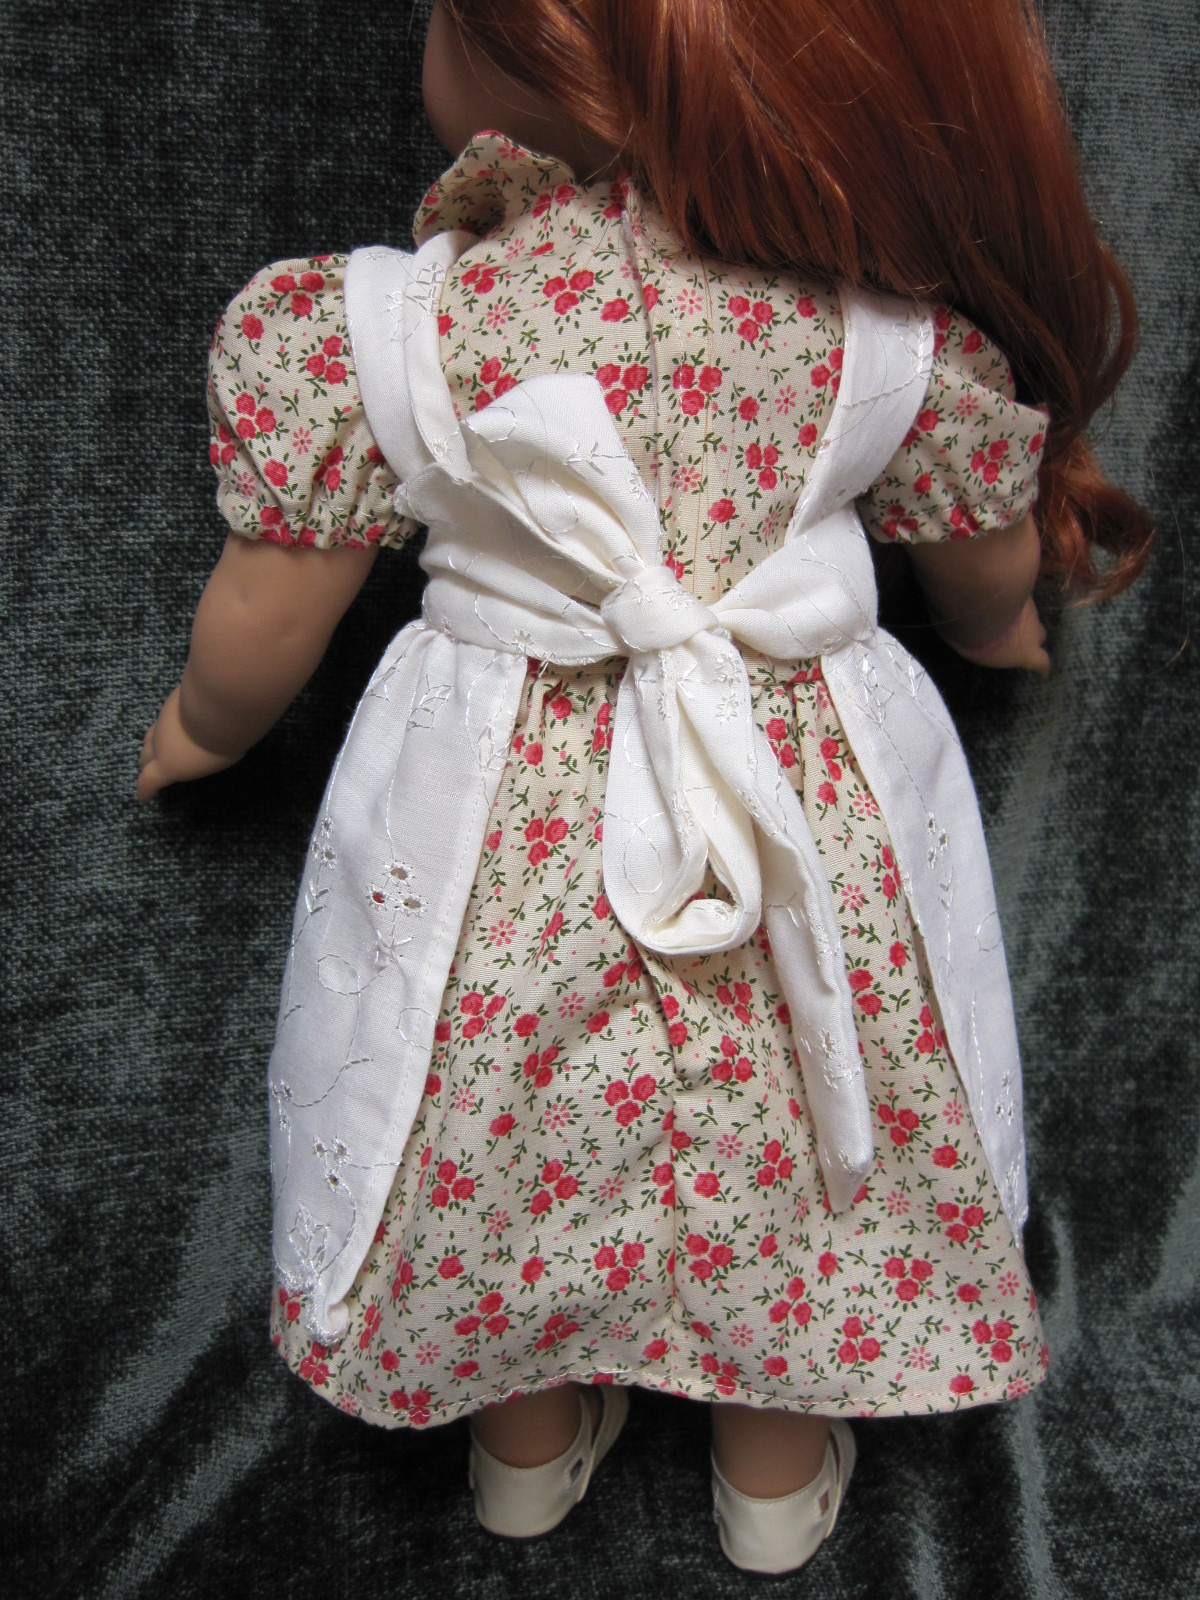 White pinafore apron ebay - Hailey Looks Absolutely Adorable In Her New Duds Above Is A Closer Pic Of The Apron Pinafore The Material Is Nice Quality And The Embroidered Detail